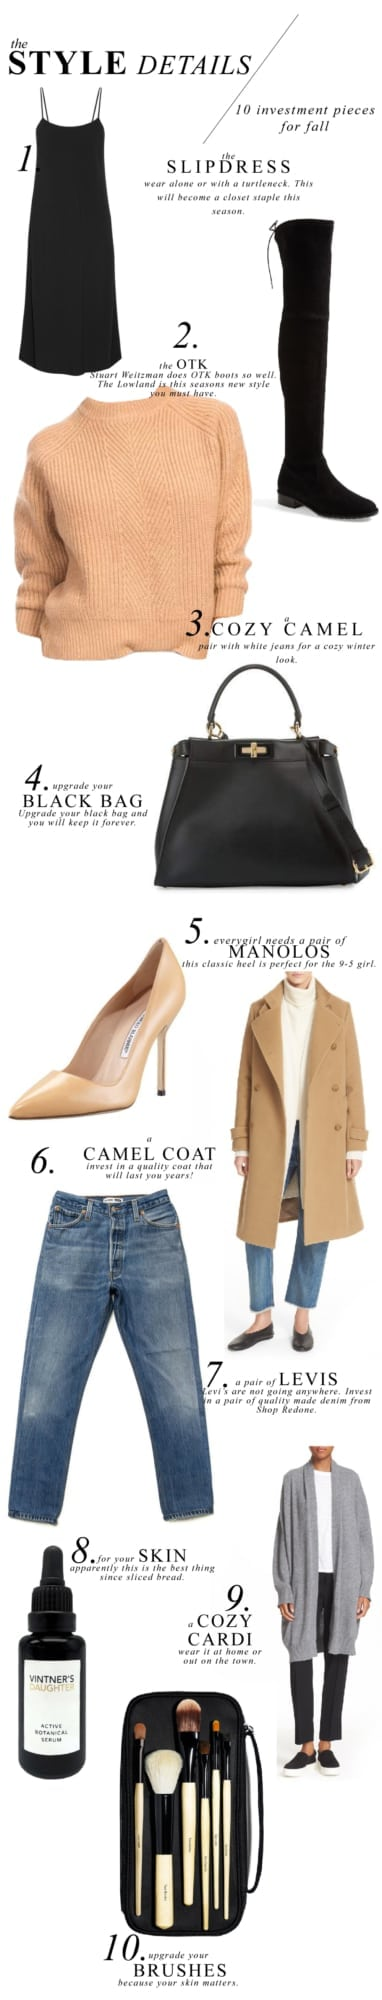 Style Details, 10 Investment Pieces for Fall